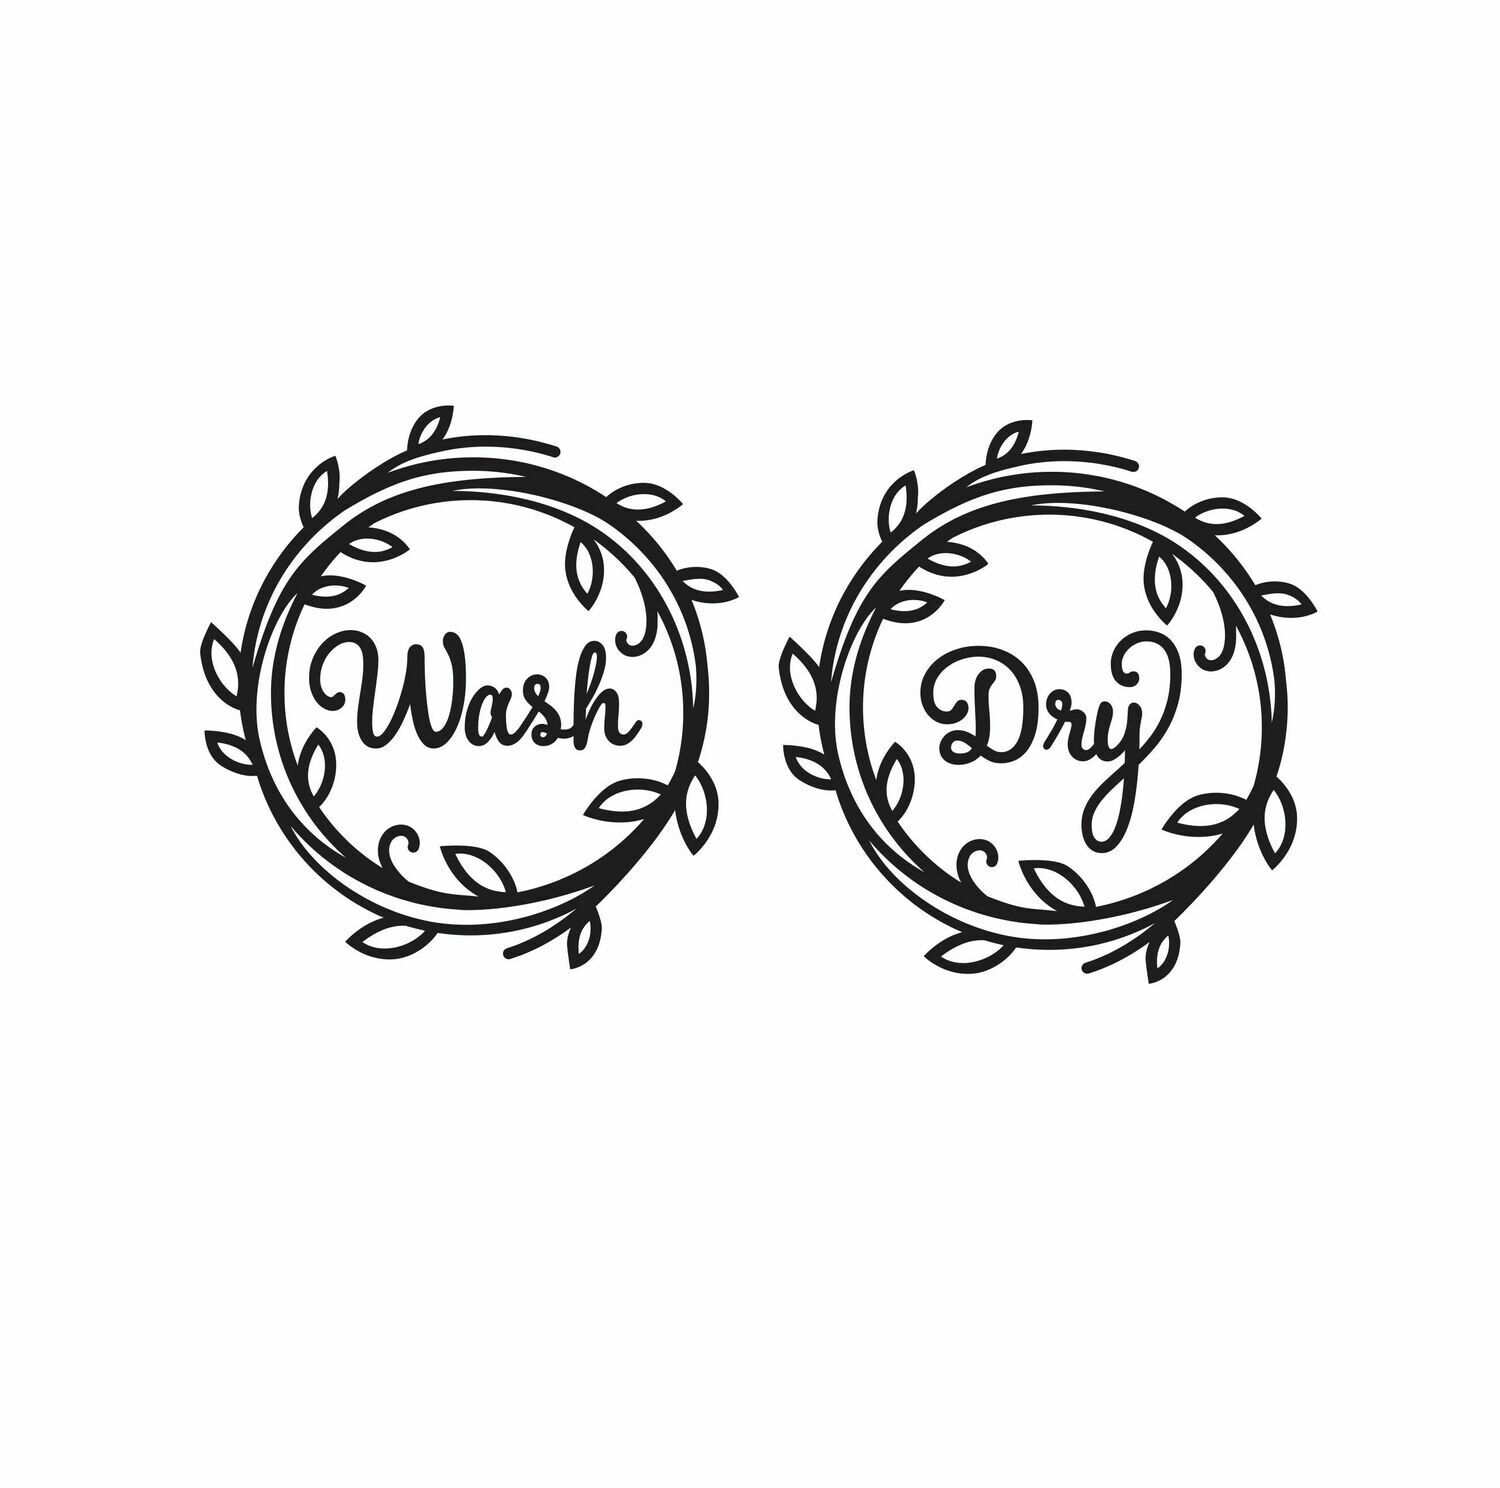 Wash & Dry Decal Set - washing machine door decals